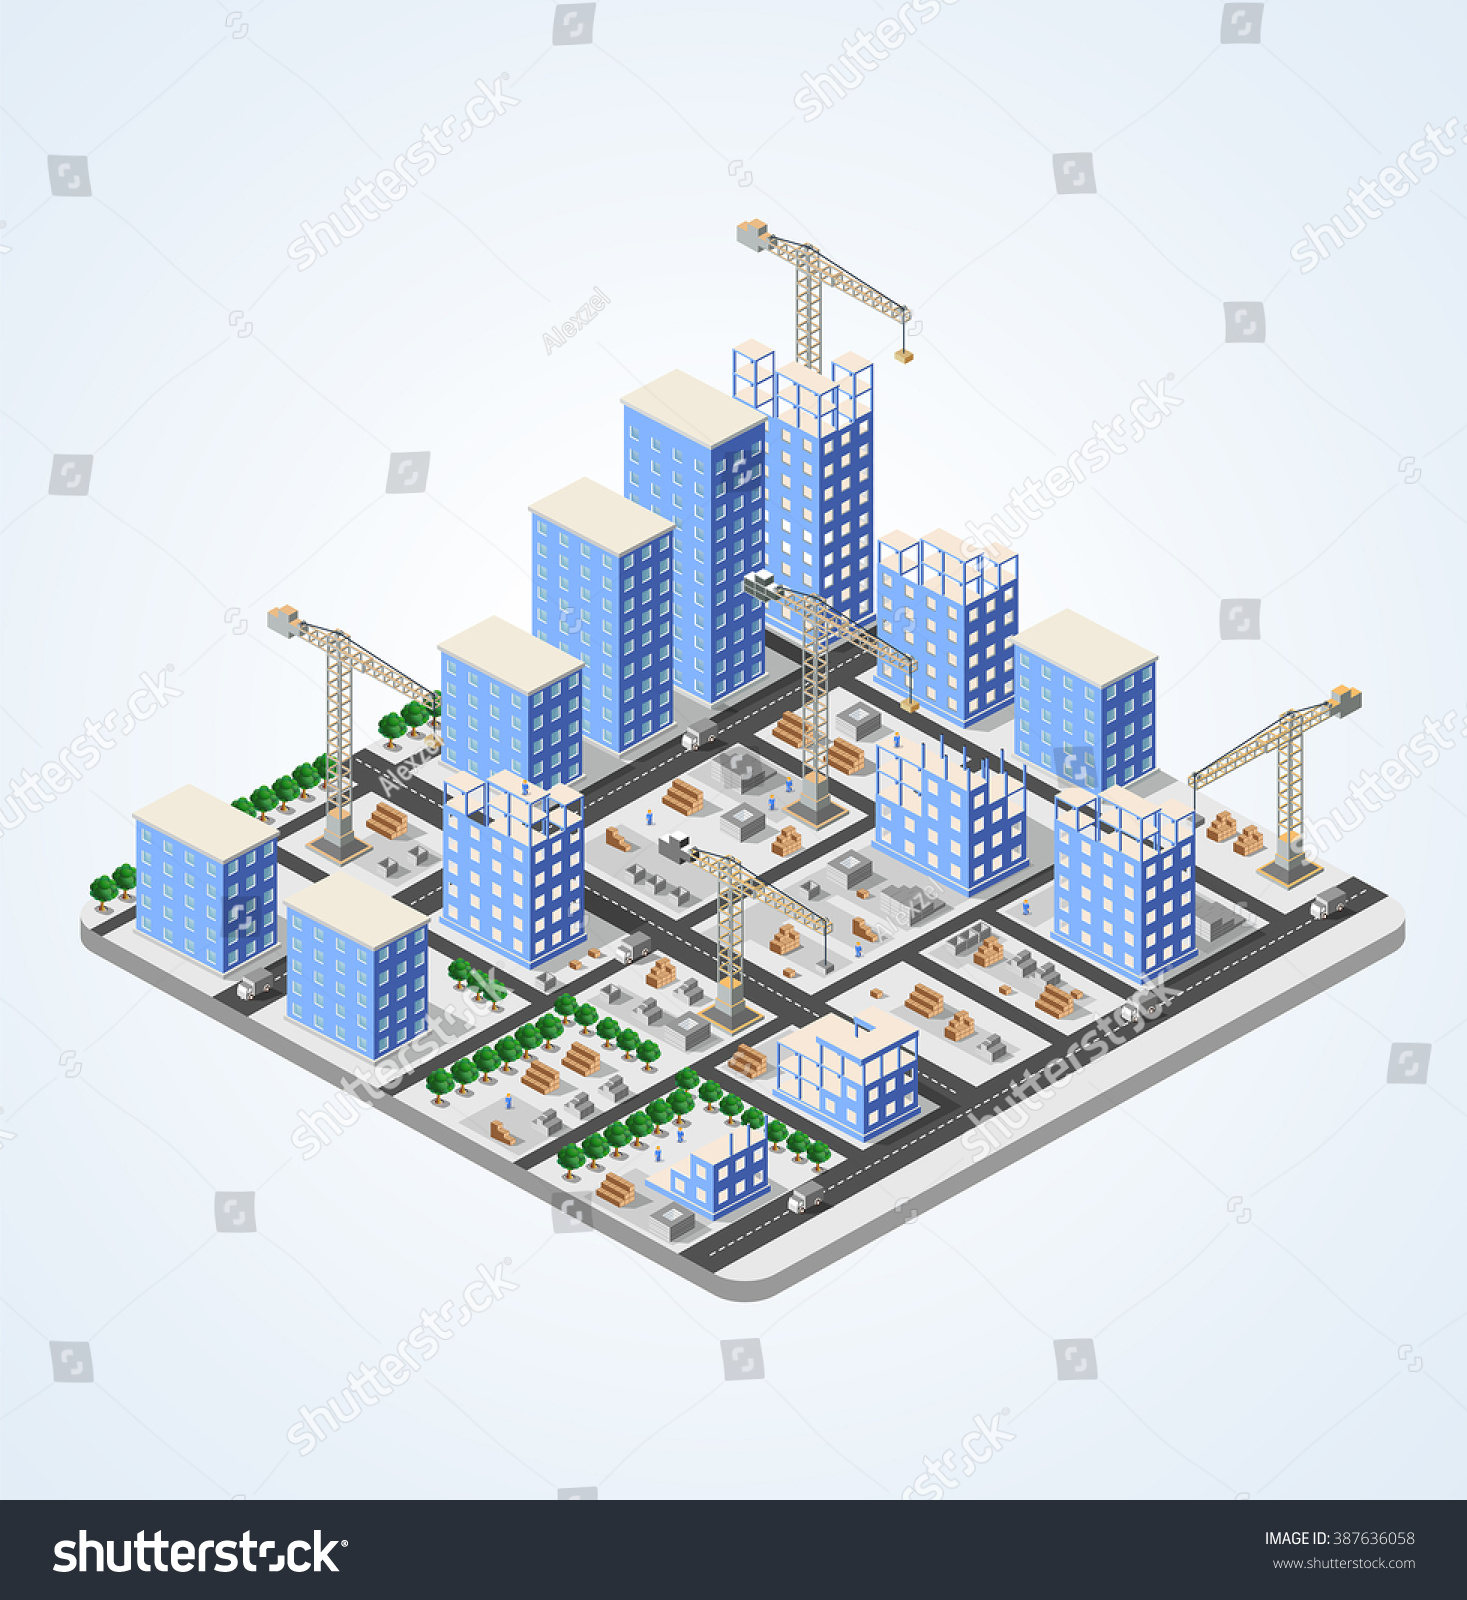 Urban industrial isometric 3d architectural flat stock for 3d plan drawing